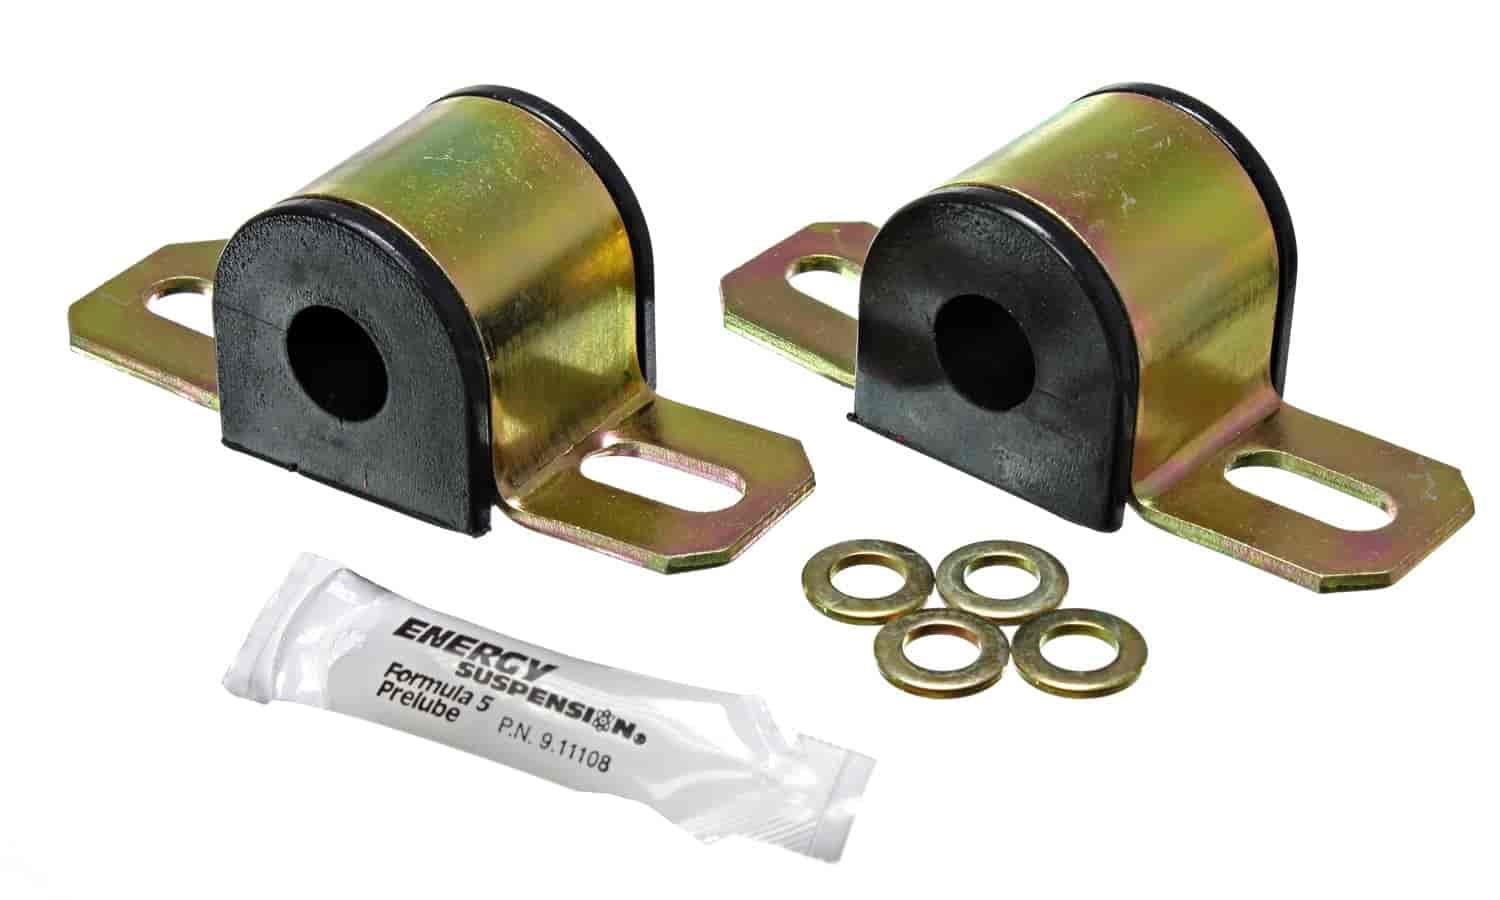 Energy Suspension 9-5104G - Energy Suspension Universal Non-Greaseable Sway Bar Bushings